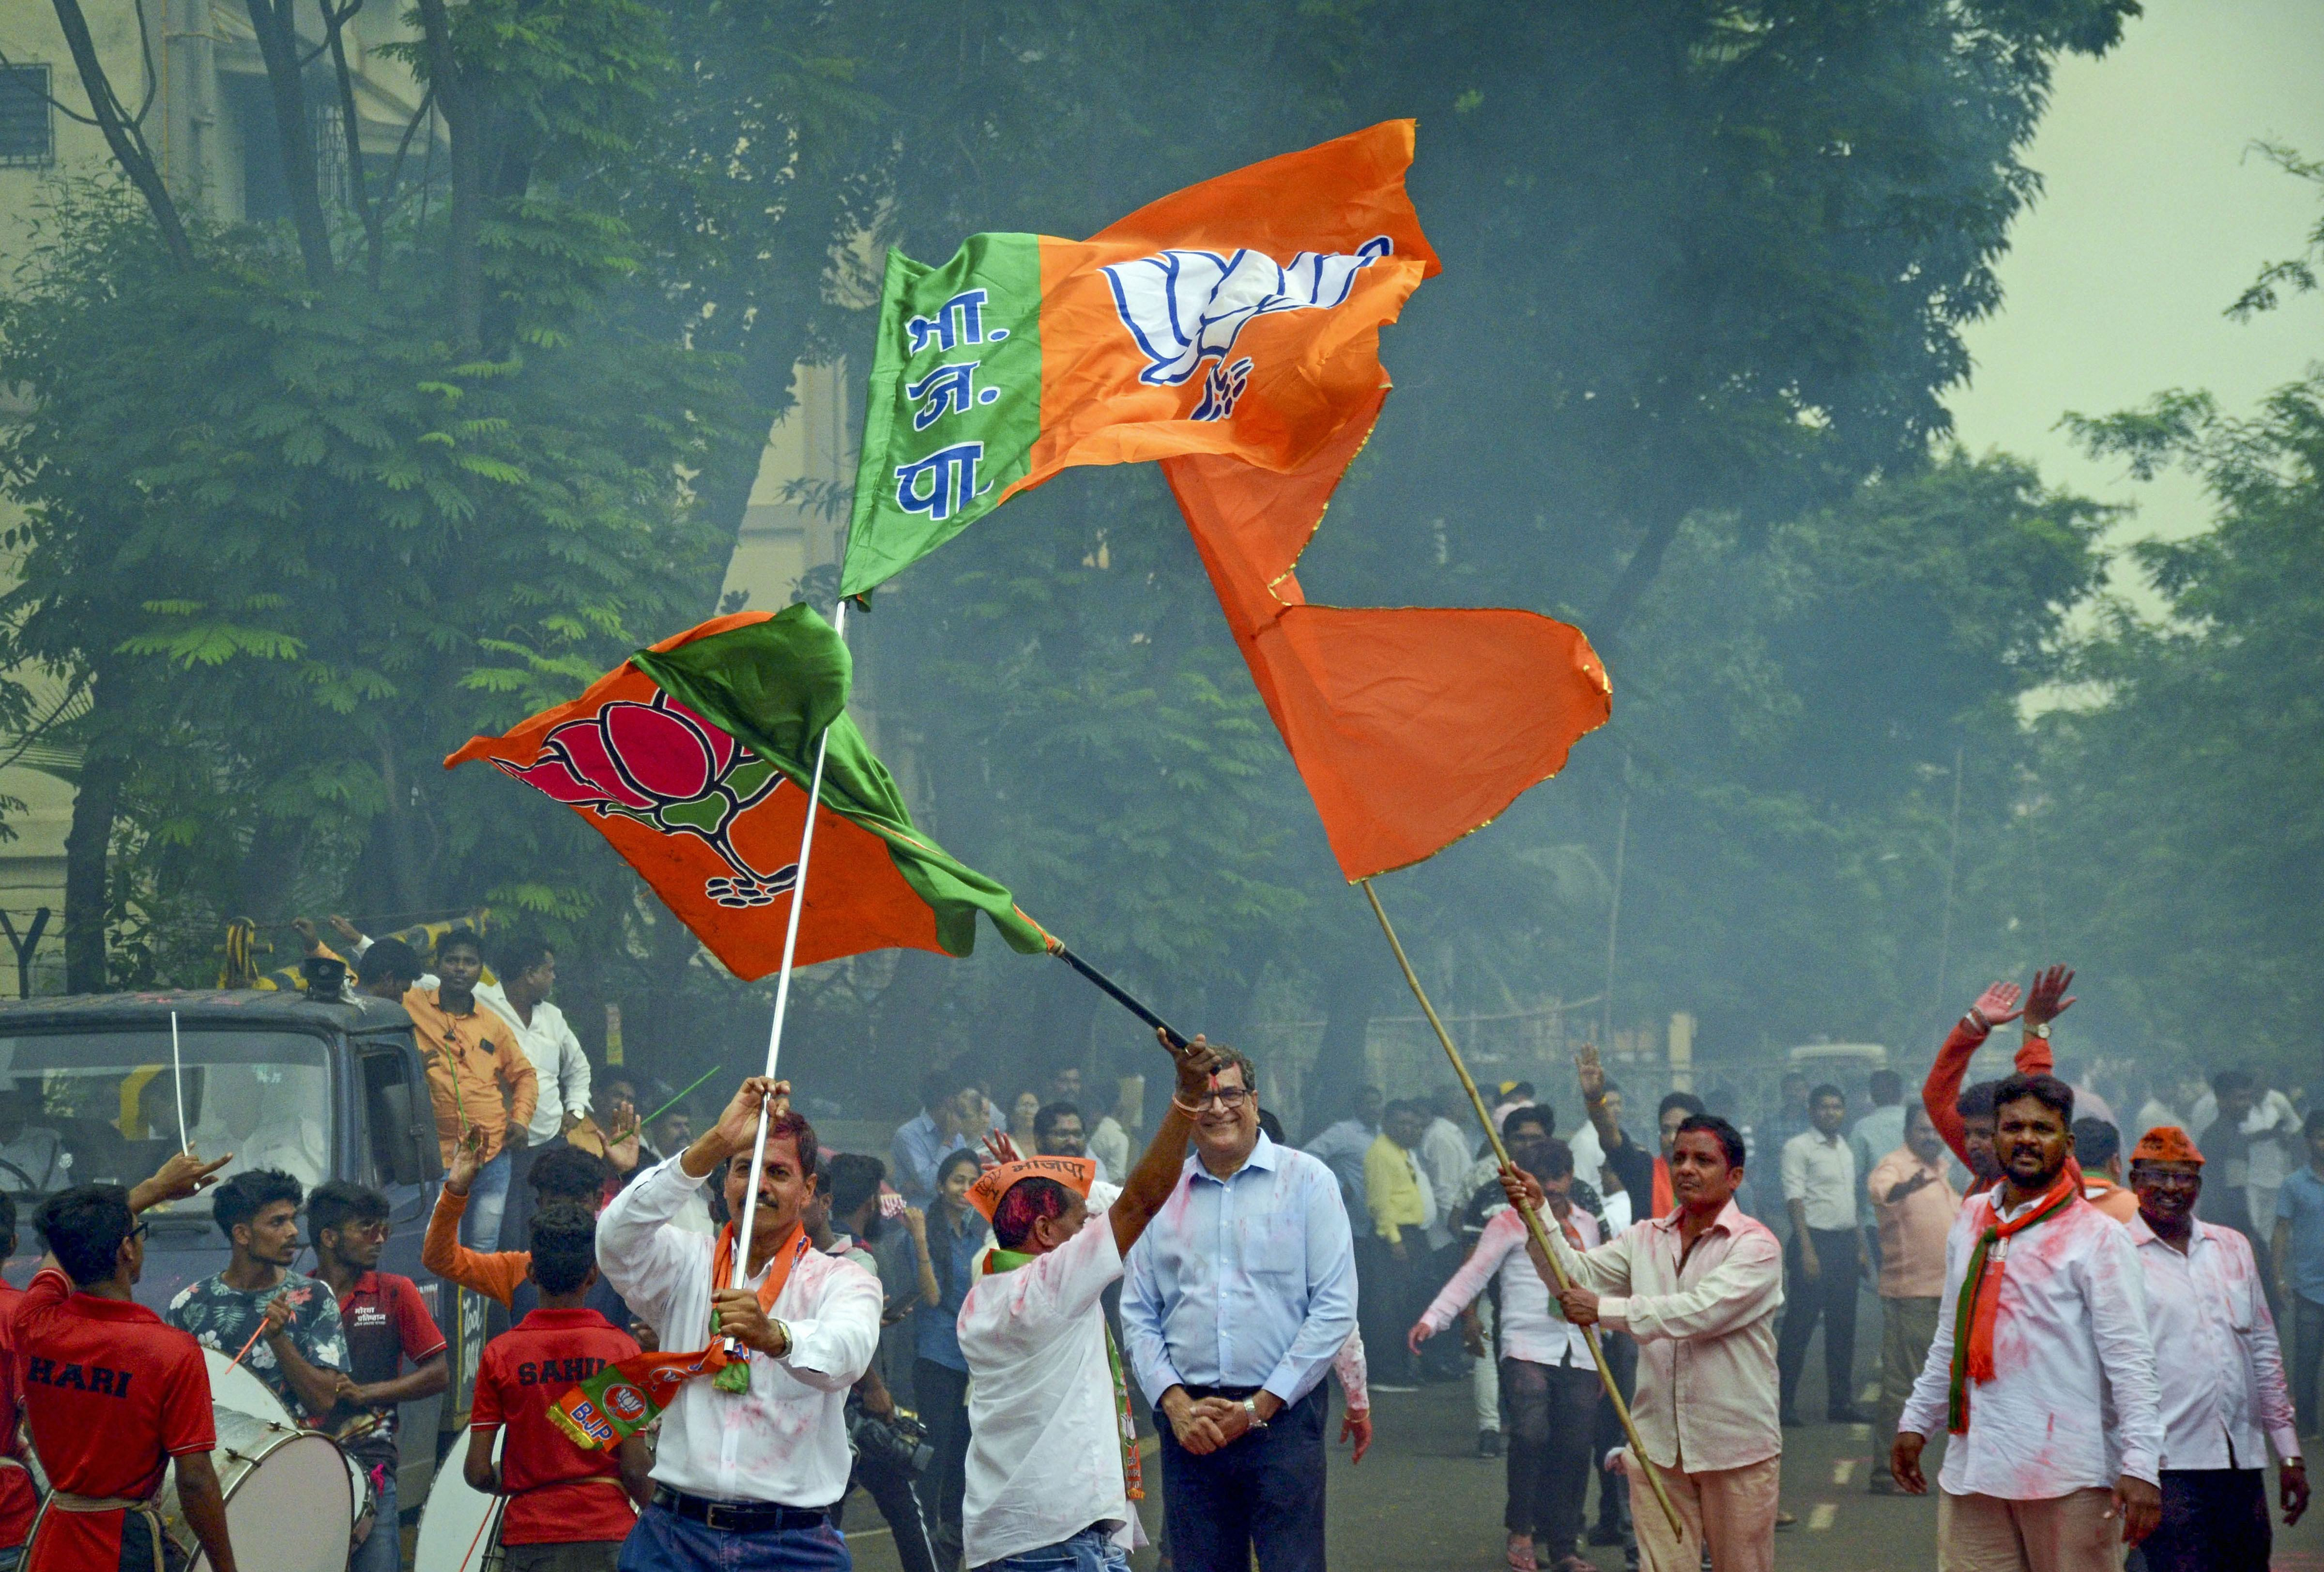 BJP and Shiv Sena workers celebrate their victory in the Maharashtra Assembly elections in Navi Mumbai on October 24.